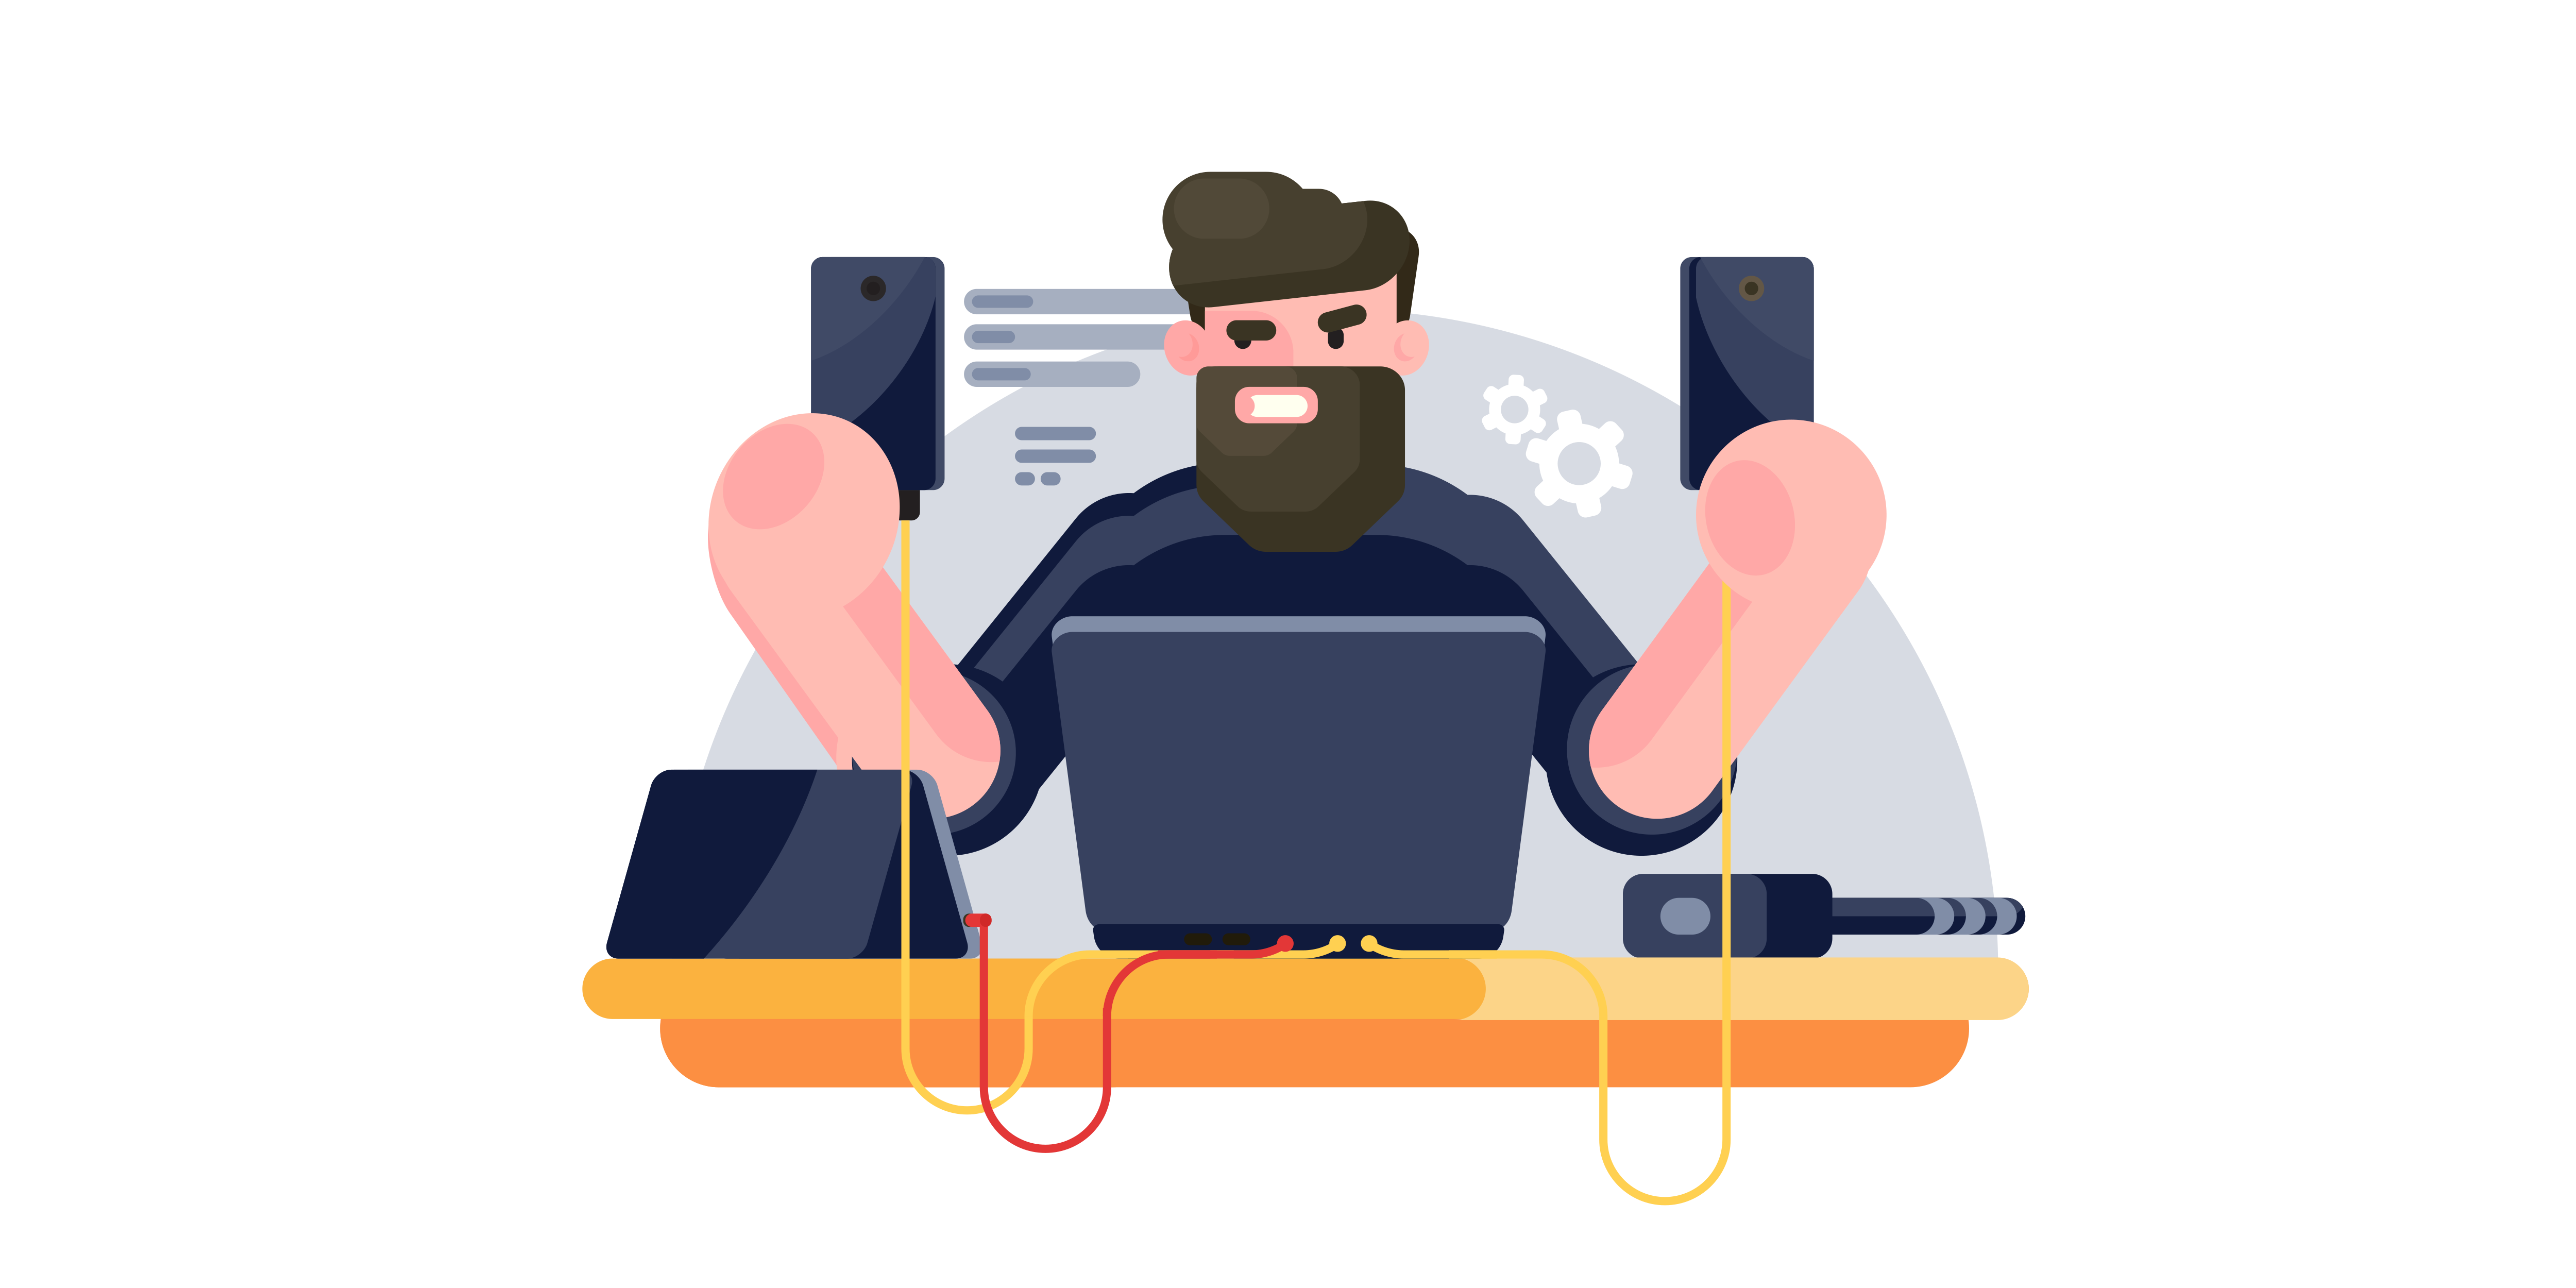 Illustration: A man using Next.js sits surrounded by a bunch of different devices.